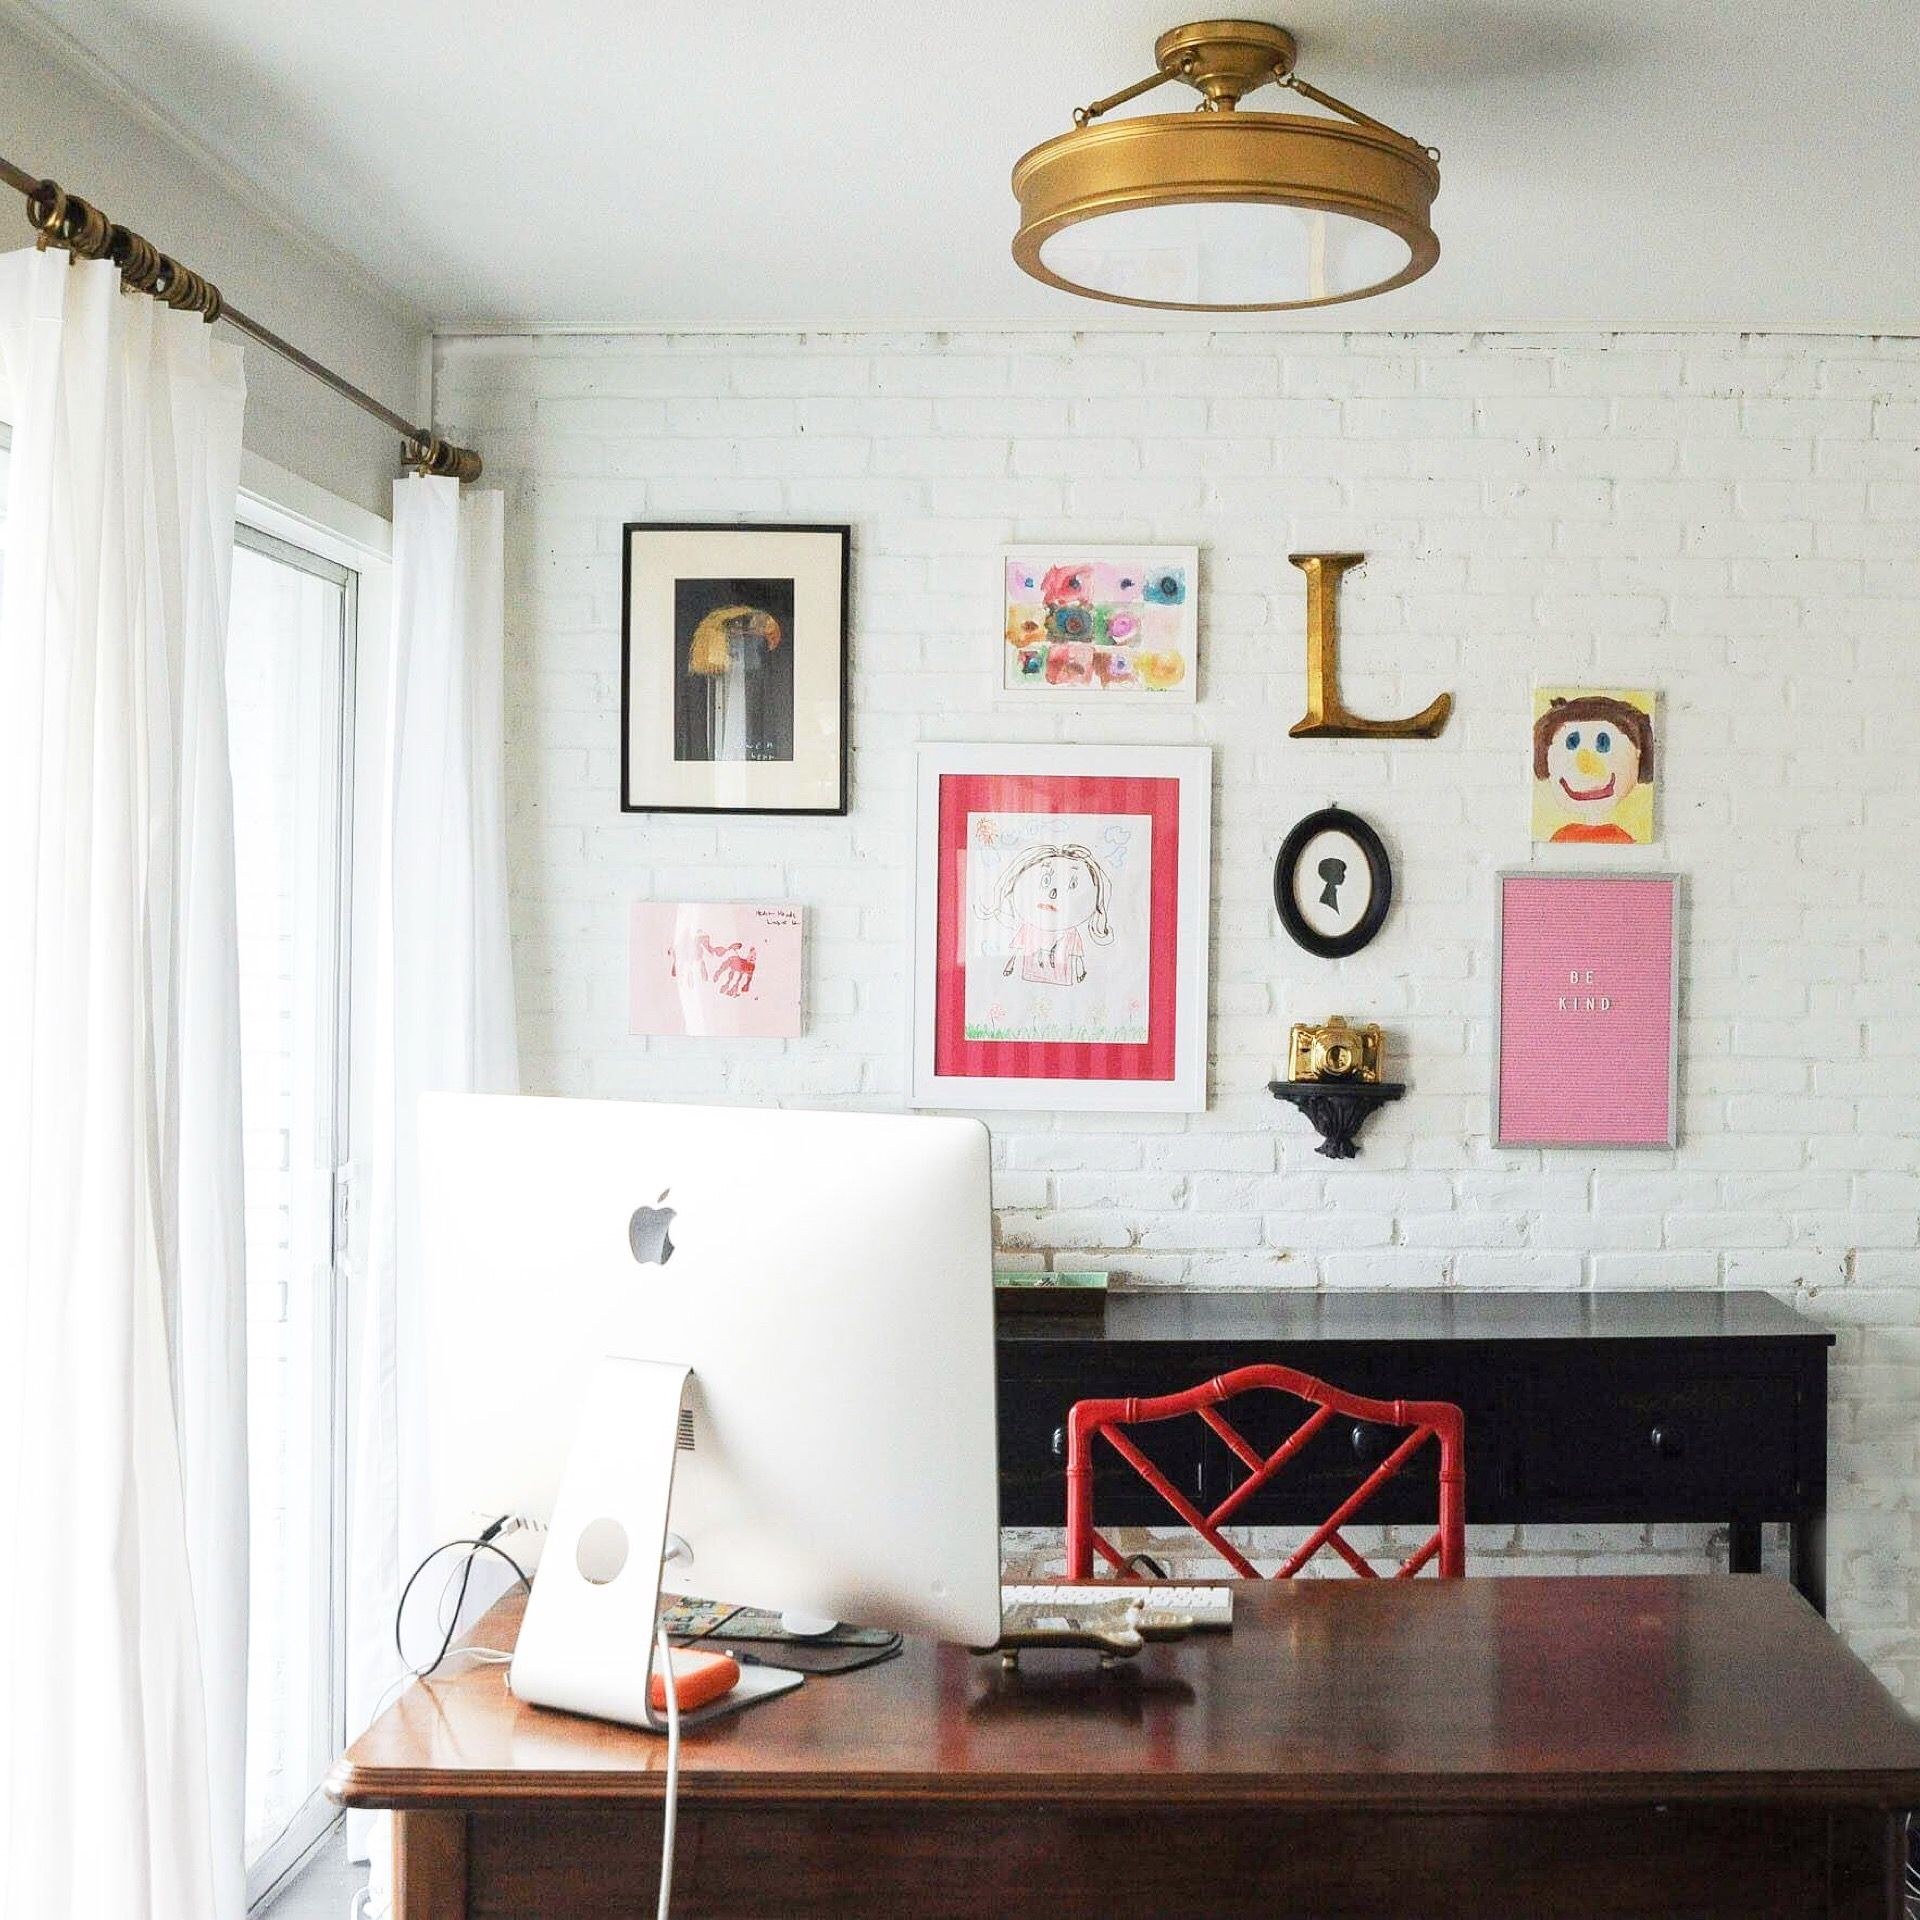 My Office Fun Preppy Office Pink Kids Art Classic Home